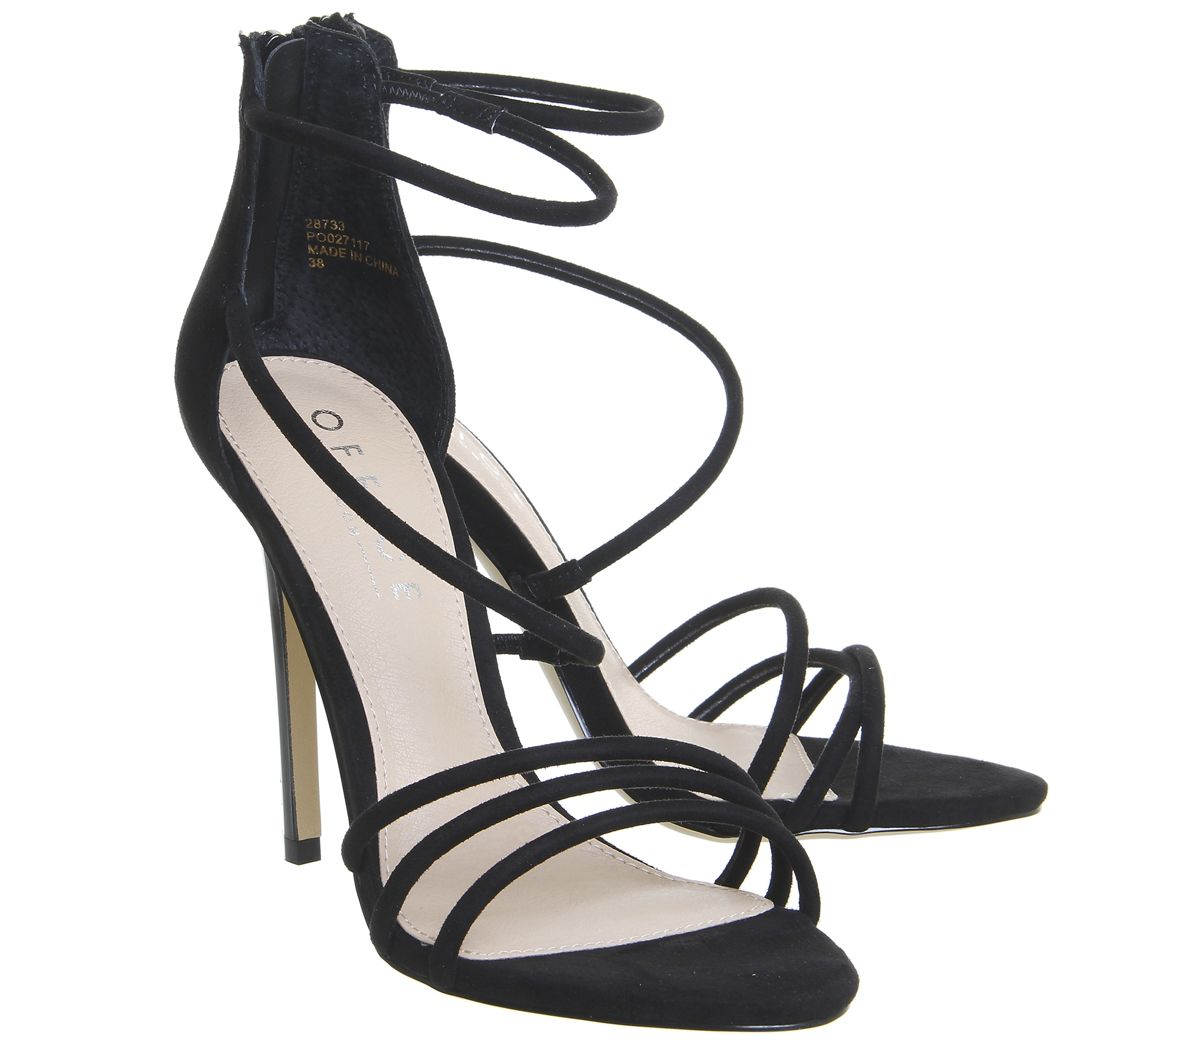 086b44d45 Womens-Office-Harness-Strappy-Sandals-Black-Heels thumbnail 10